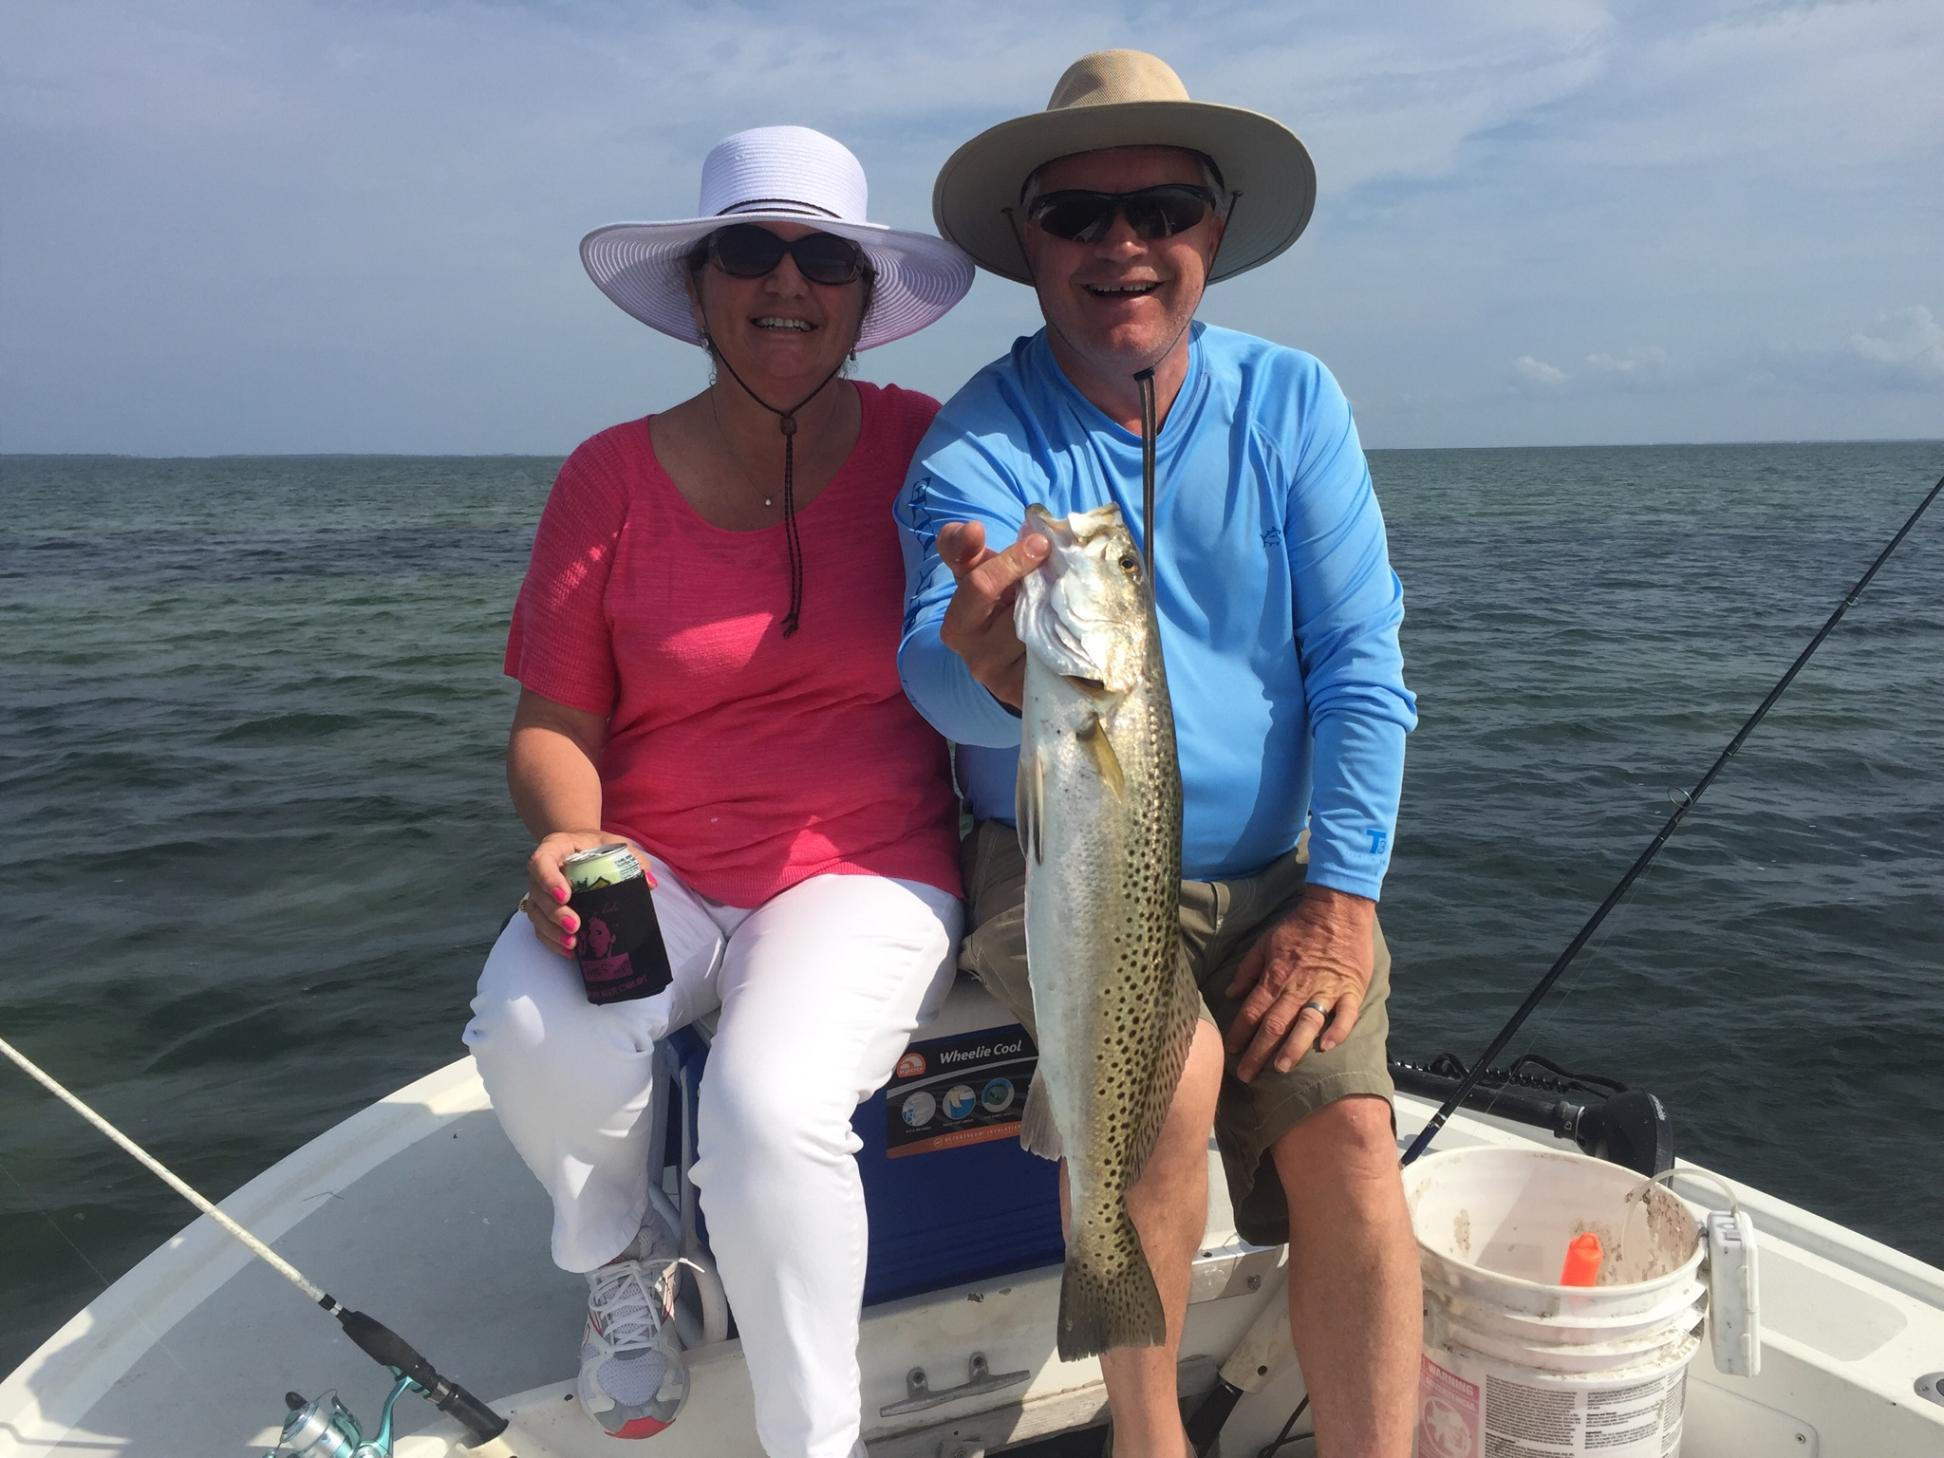 Fishing charters in apalachicola st george island for Fishing charters mexico beach fl